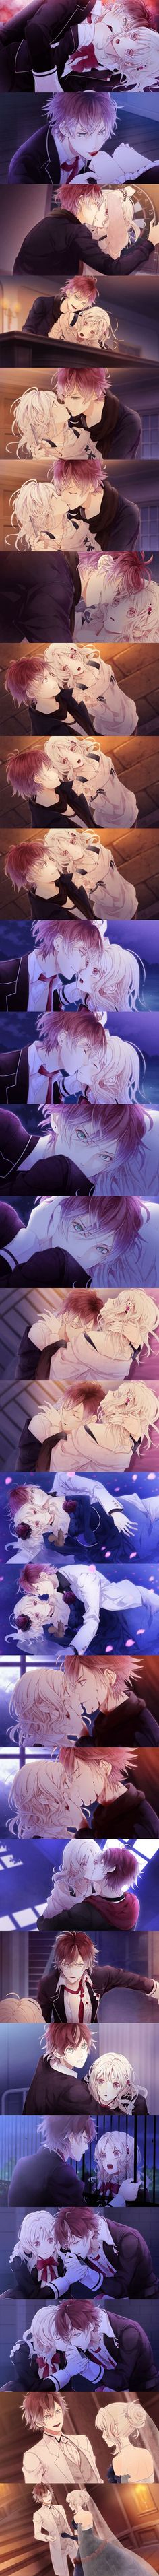 Diabolik lovers, vampire anime